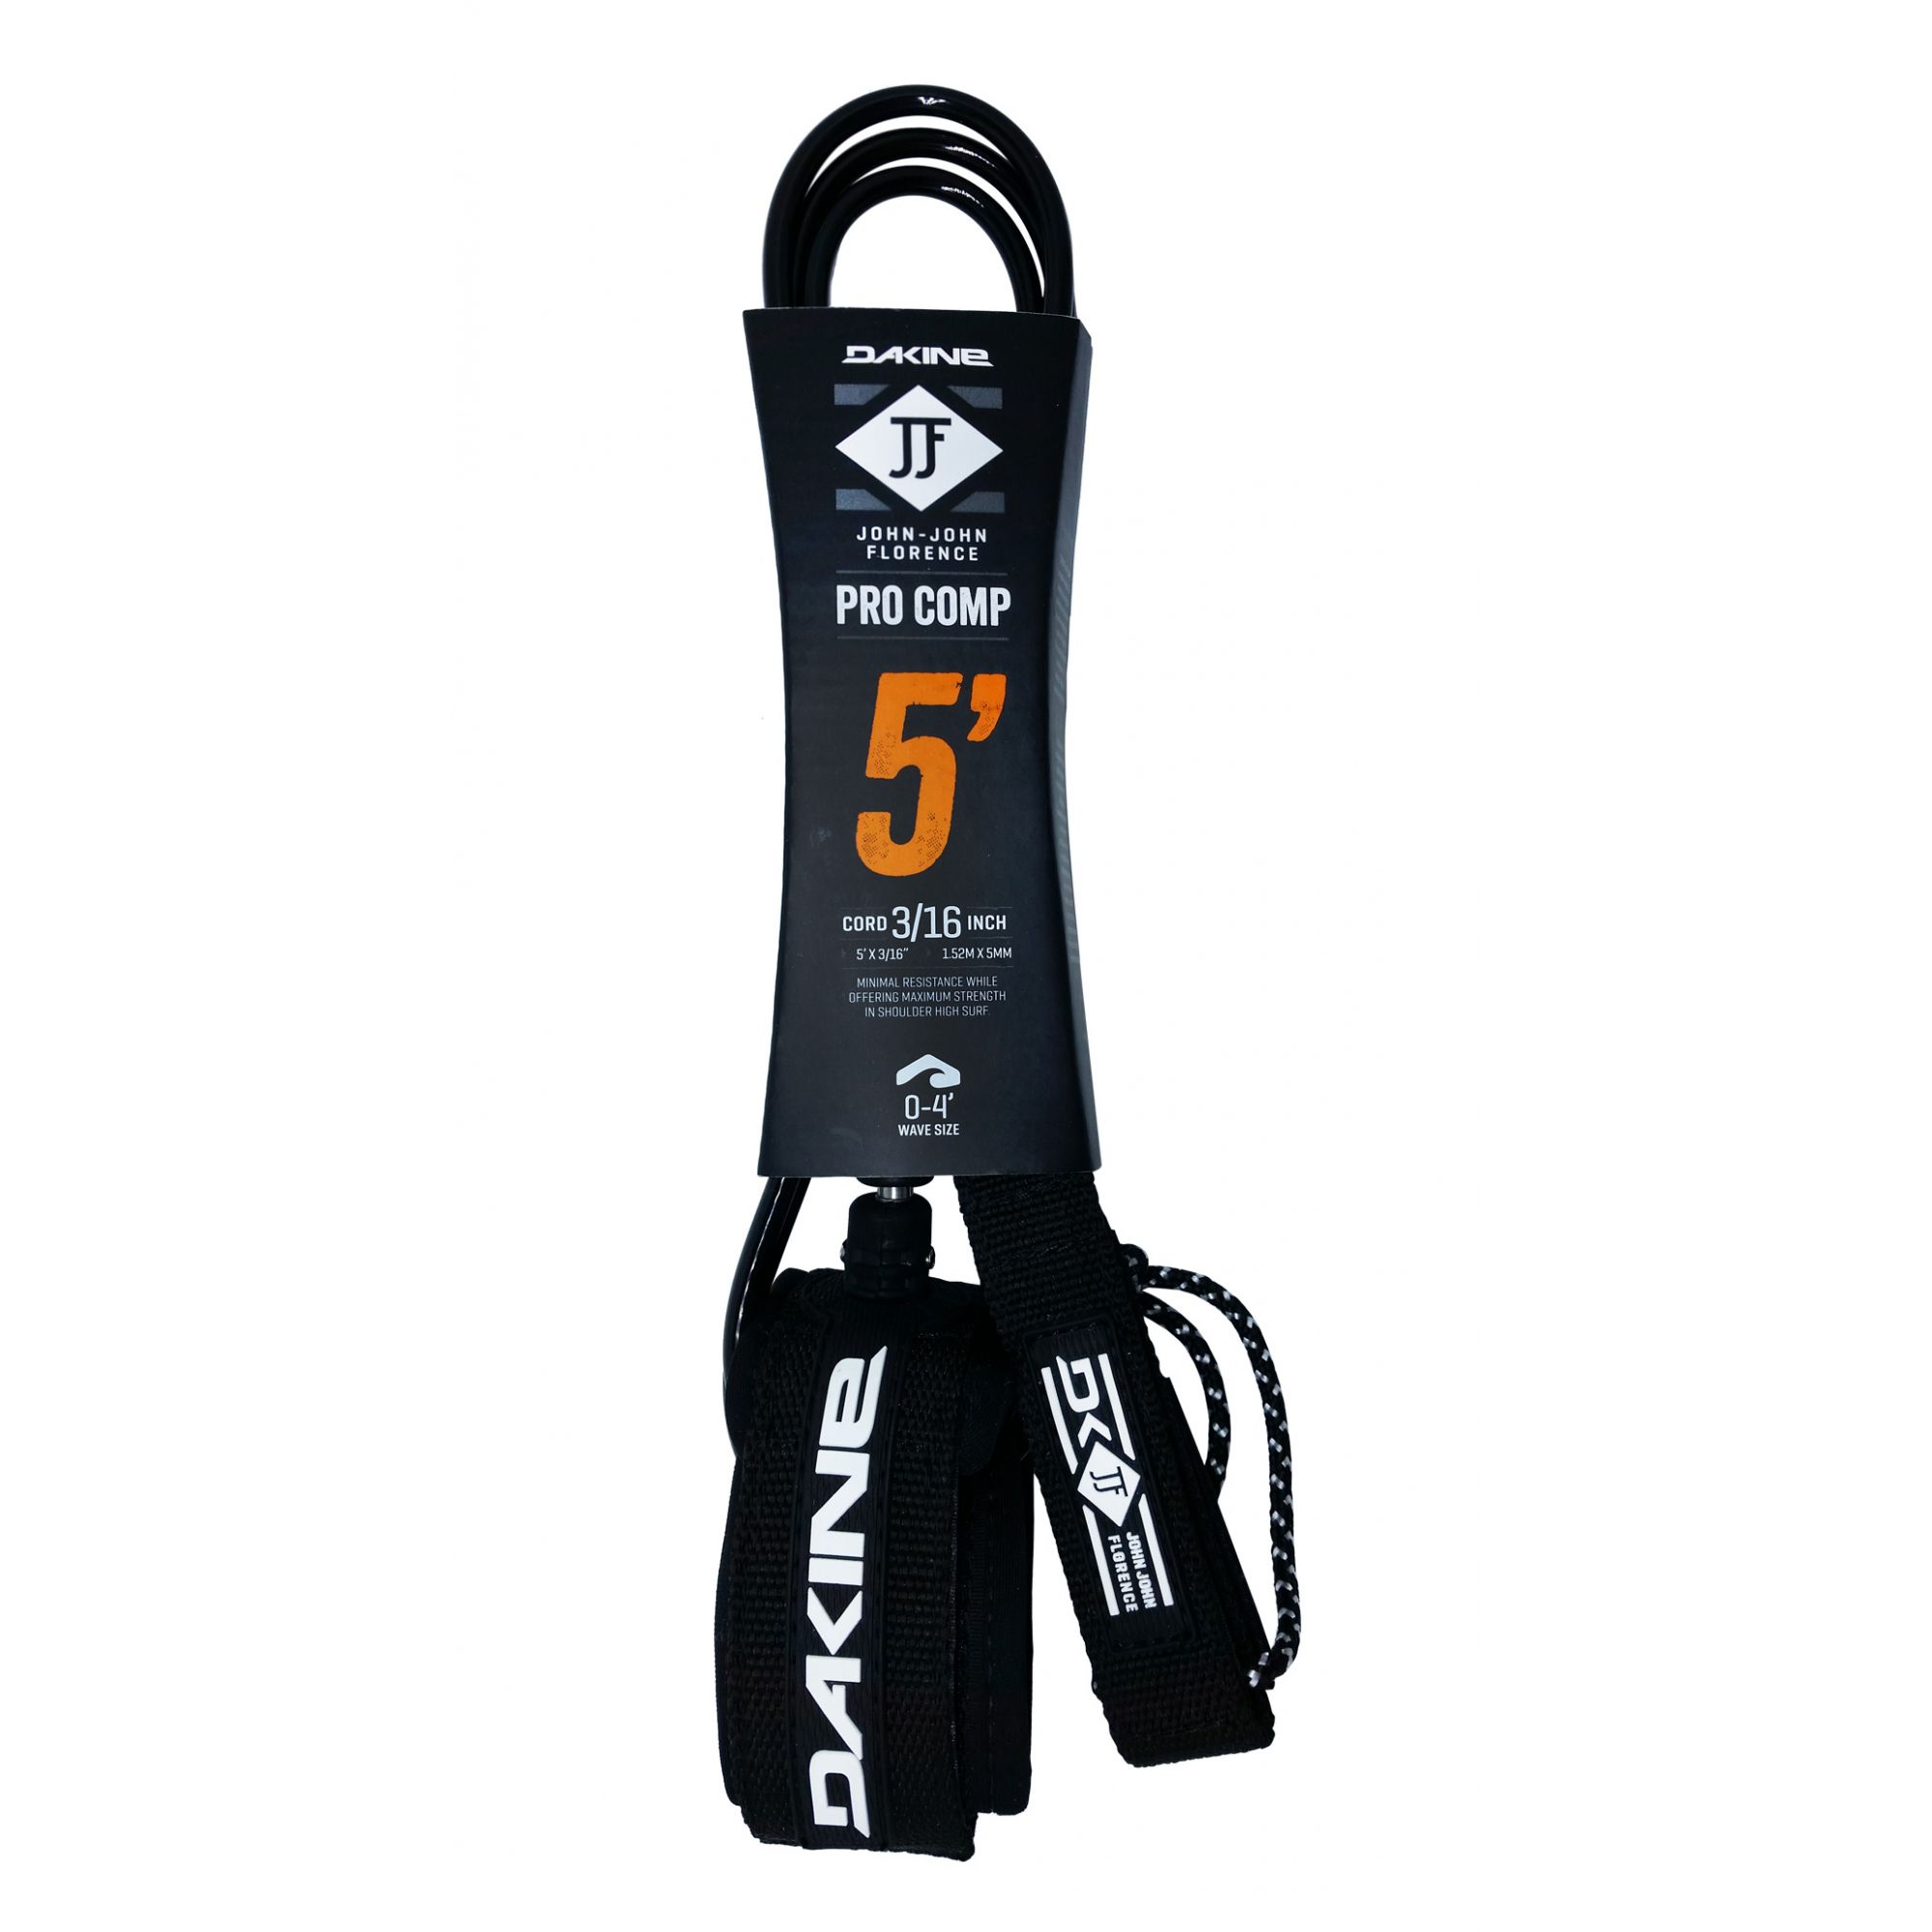 Leash Dakine John John Florence Pro Comp 5' x 5mm